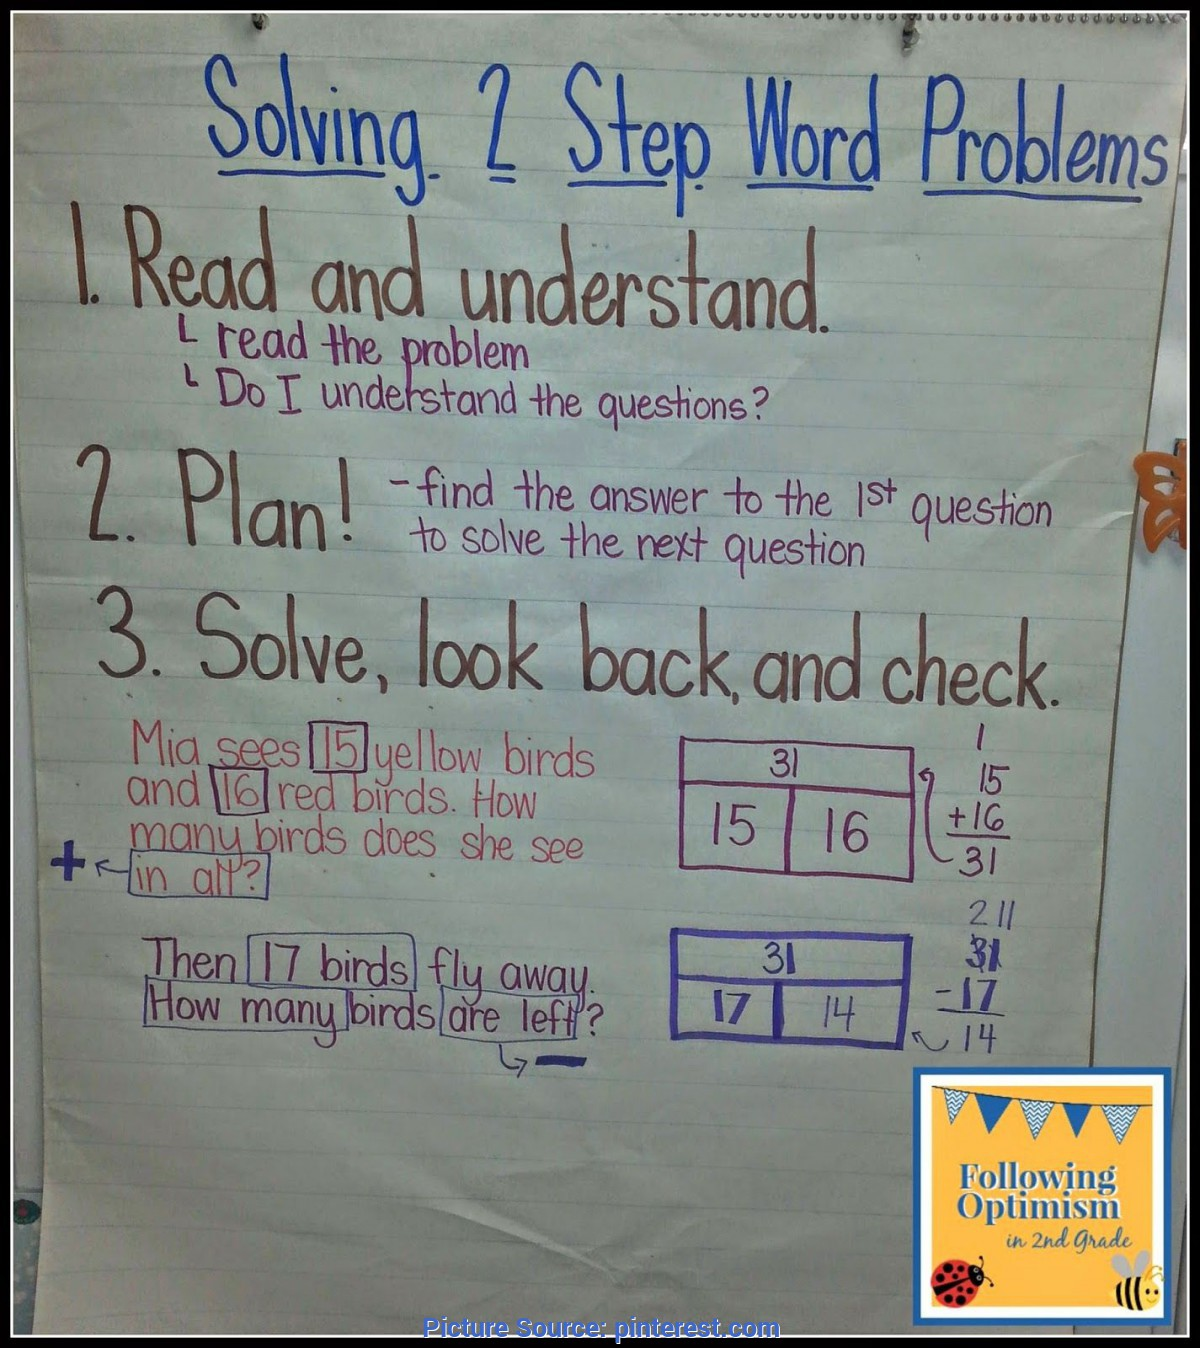 Trending Word Problem Lesson Plans 2Nd Grade Following Optimism In 2Nd Grade: Two-Step Word Problems | By M